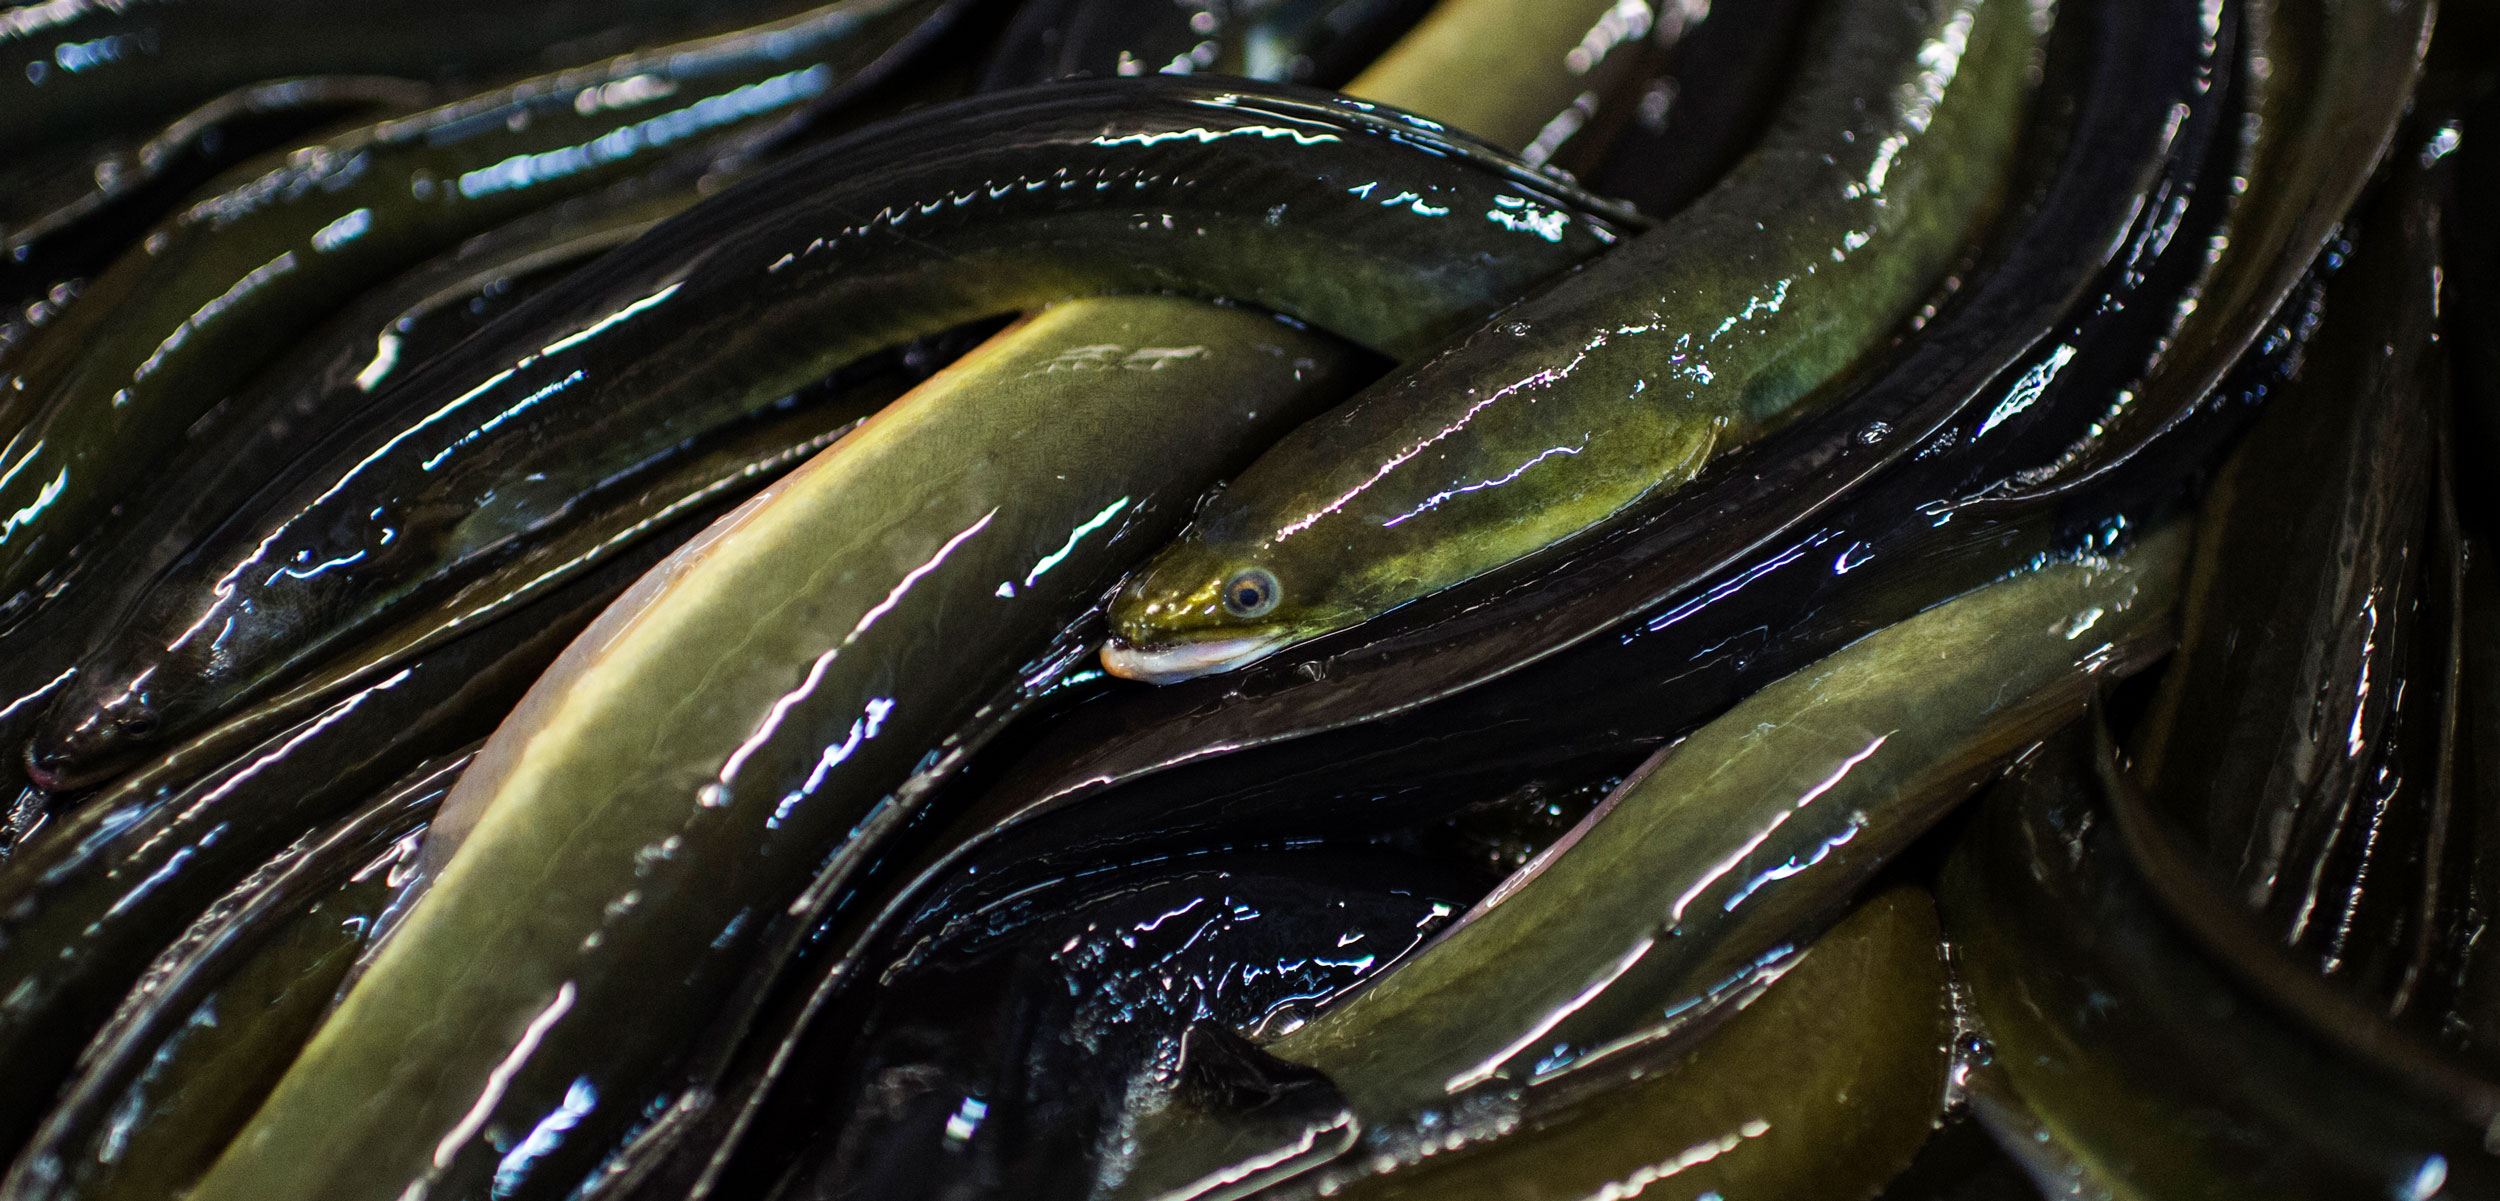 a tangle of mature eels in a processing plant